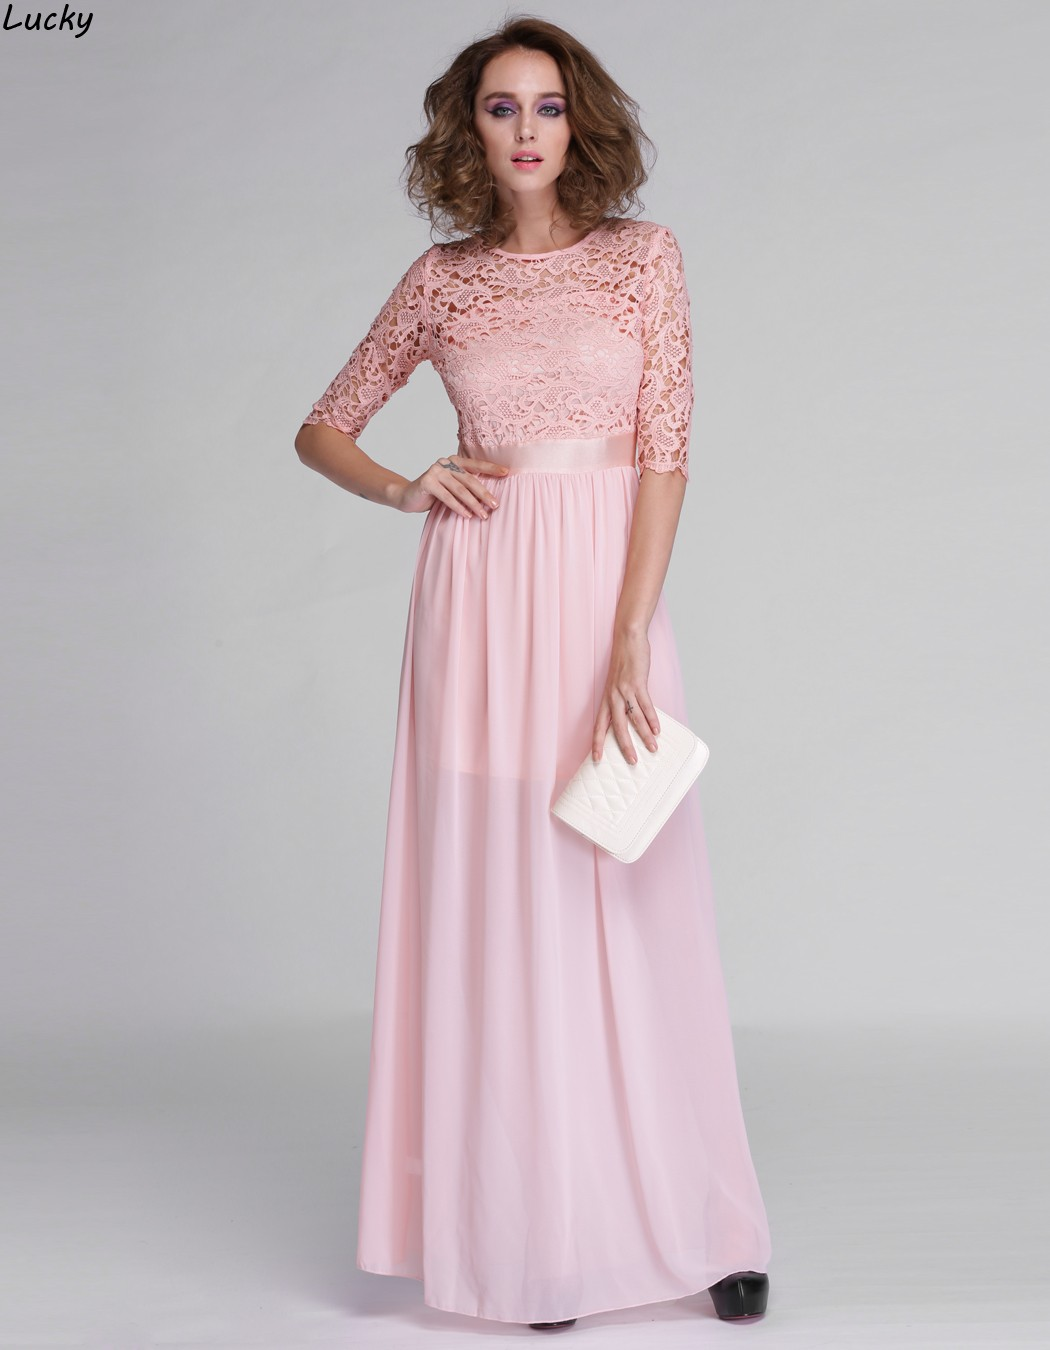 f39f753a5d0 Long Sleeve Lace Maxi Dress Blush - Gomes Weine AG